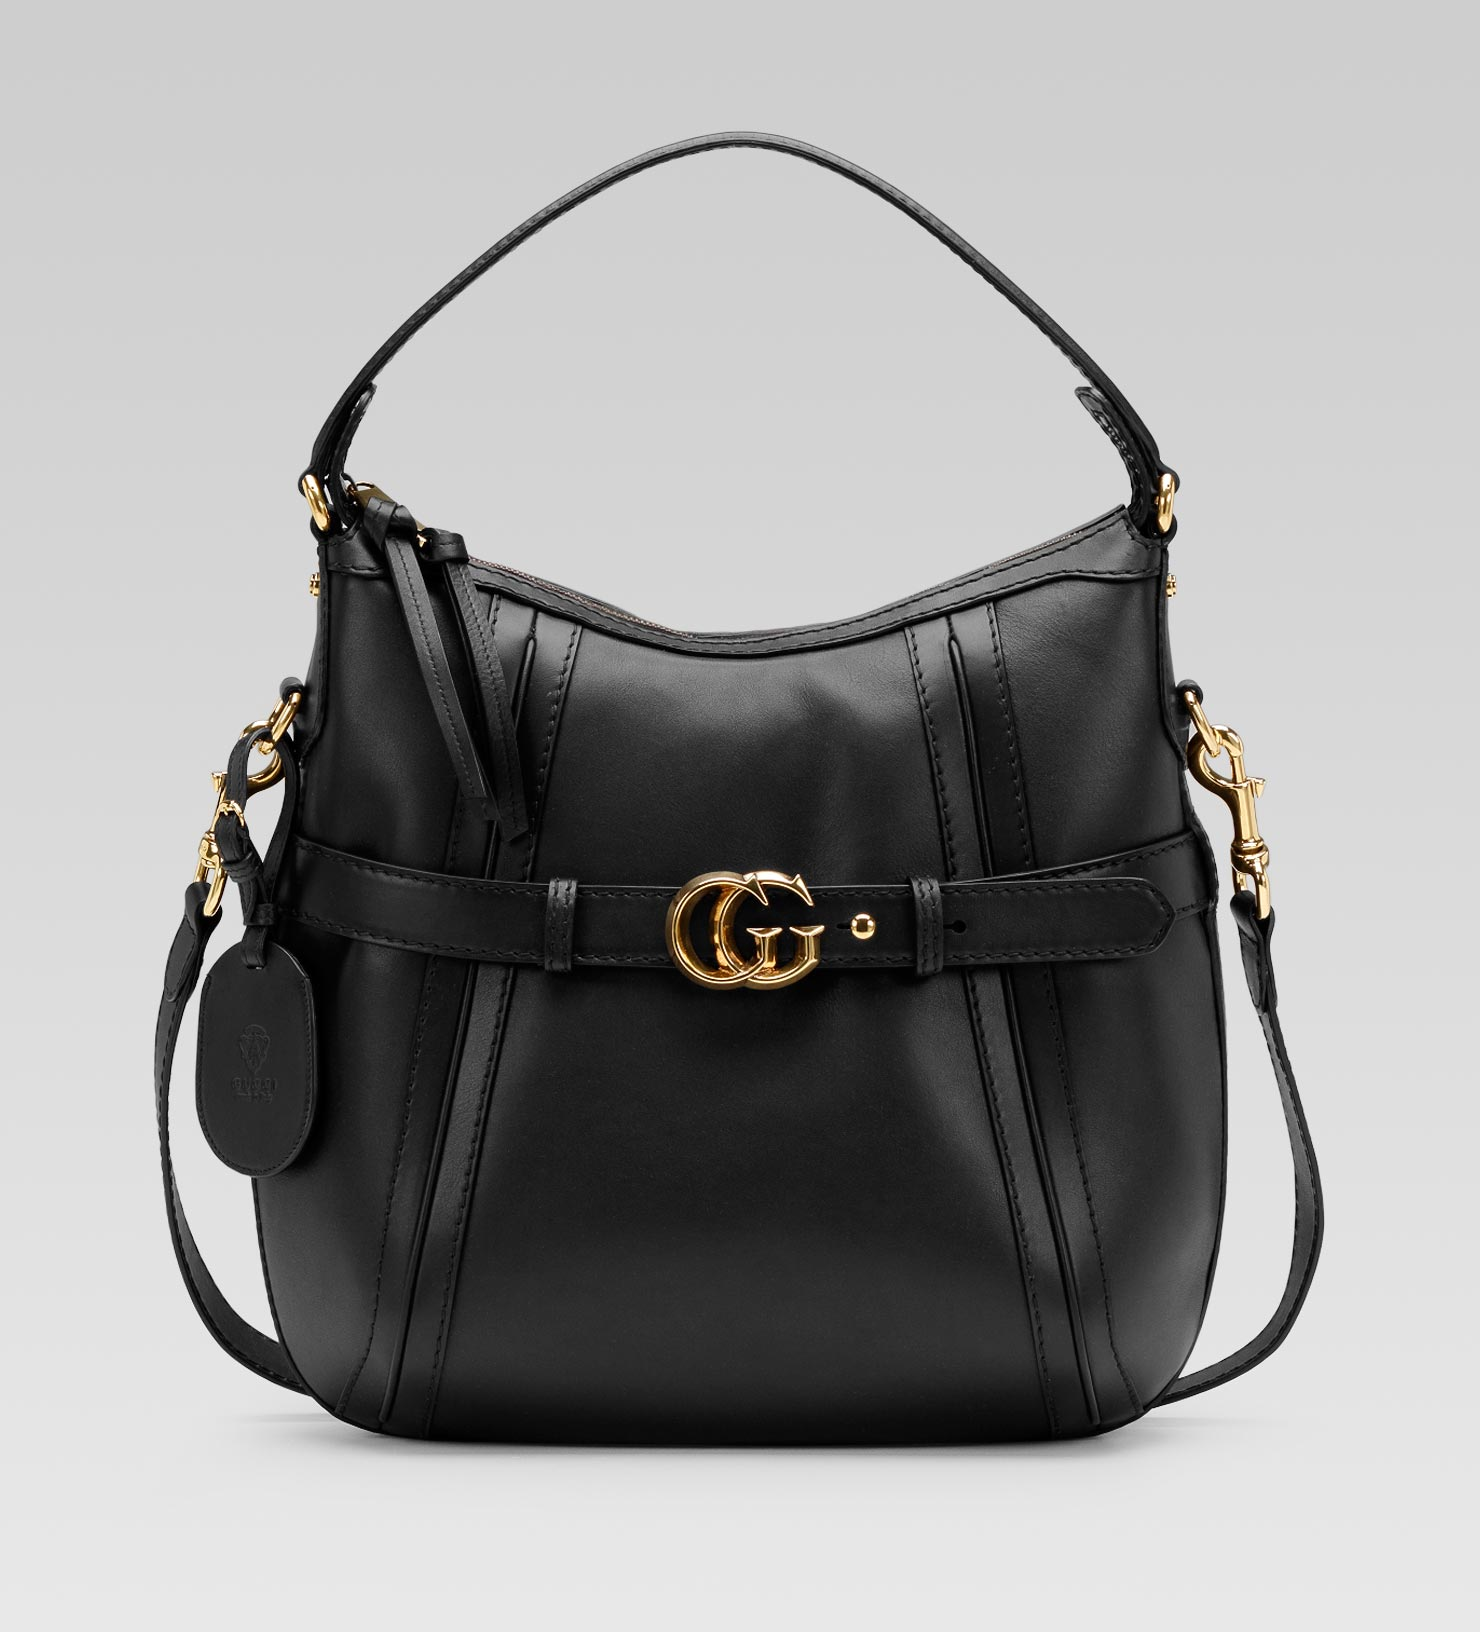 b83d6ce85a0 Gucci Gg Running Medium Hobo with Double G Detail in Black - Lyst